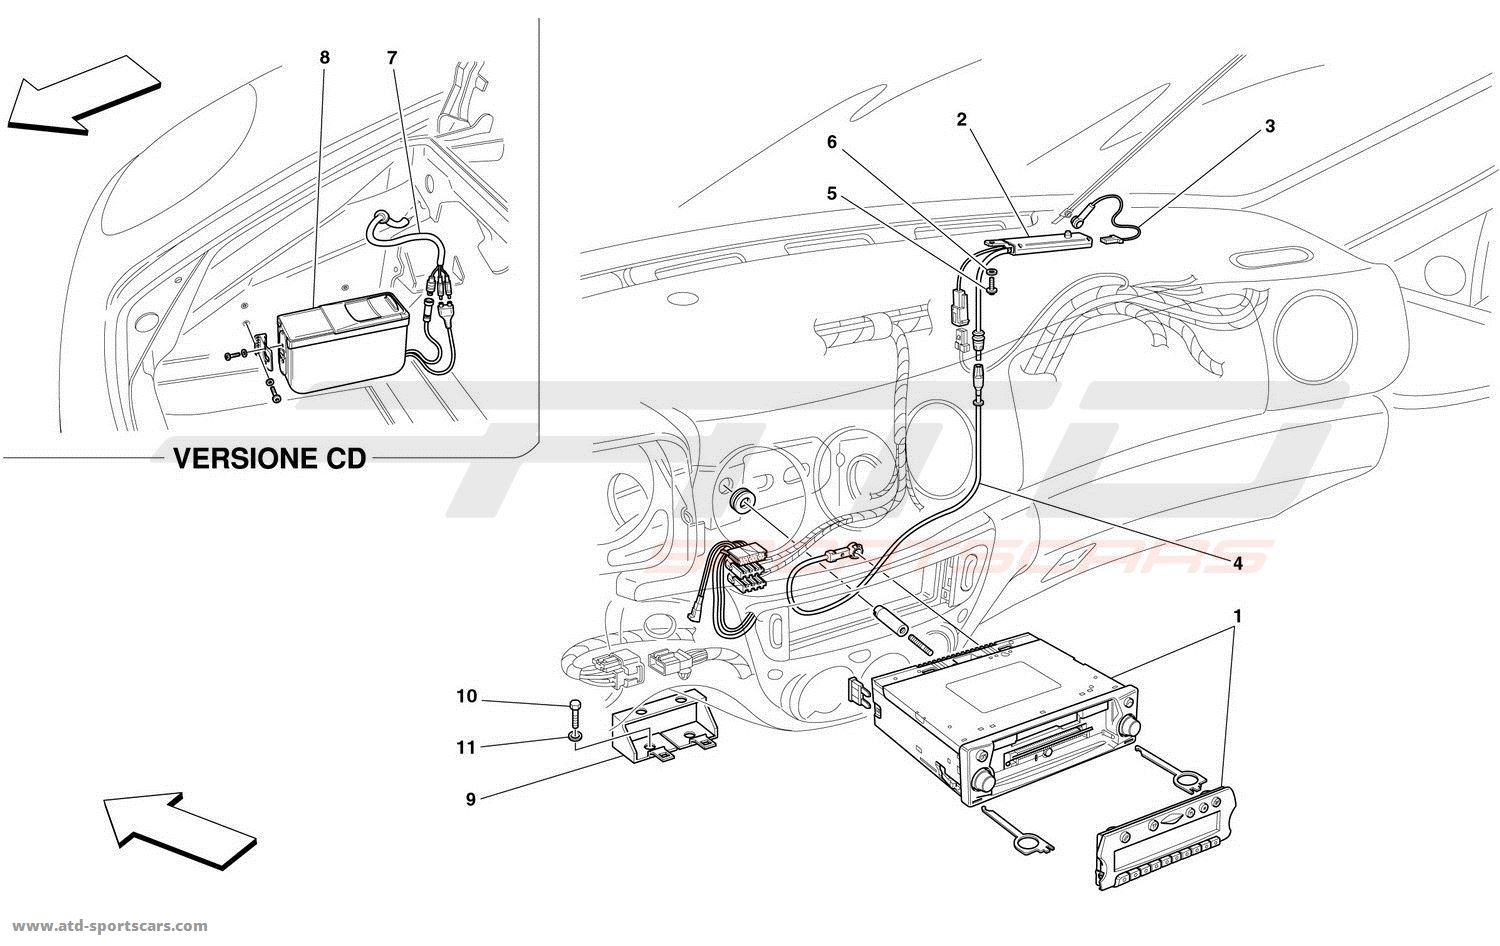 Ferrari 360 Spider Electrical parts at ATD-Sportscars